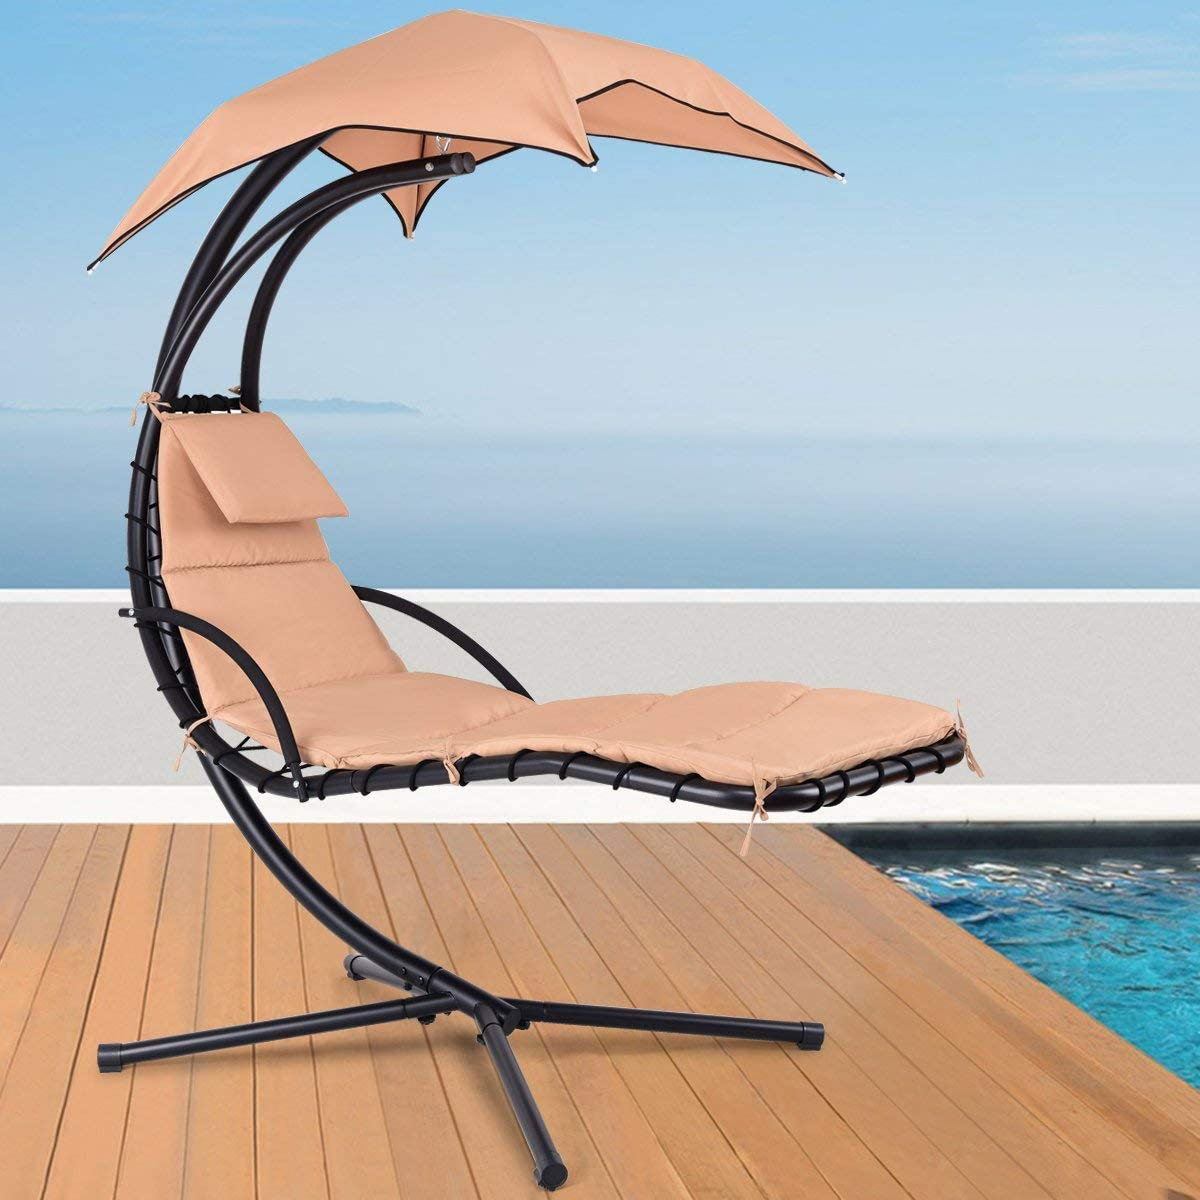 CozyBox Hammock Chair Stand Outdoor Patio Furniture, Outdoor Swings, Patio Lounge Chair Outdoor Hanging Chair Outdoor Lounger Free Standing Hammock Yard Chair Khaki